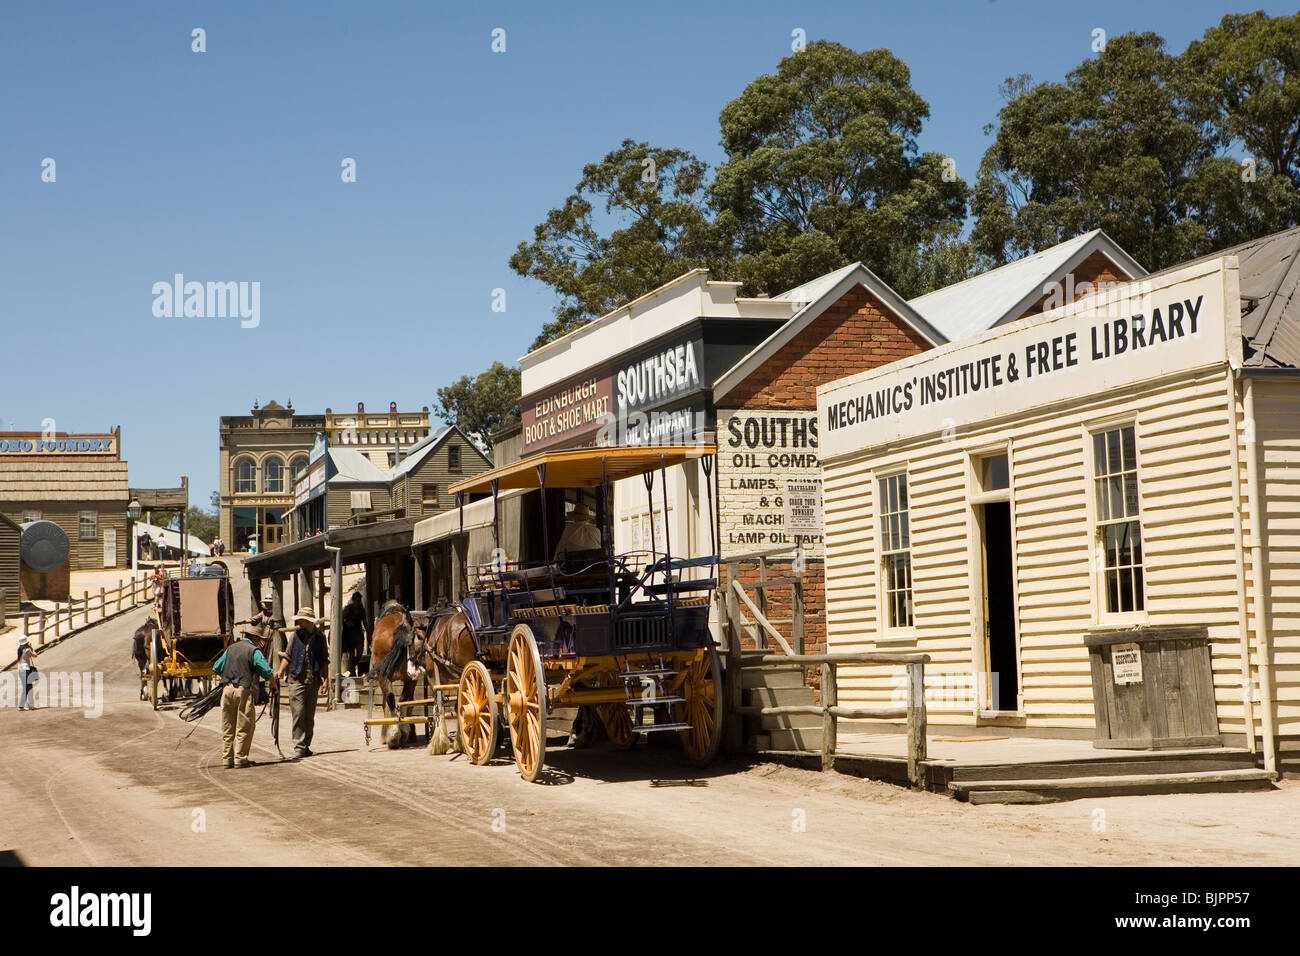 Sovereign Hill is an open air museum showing life during the